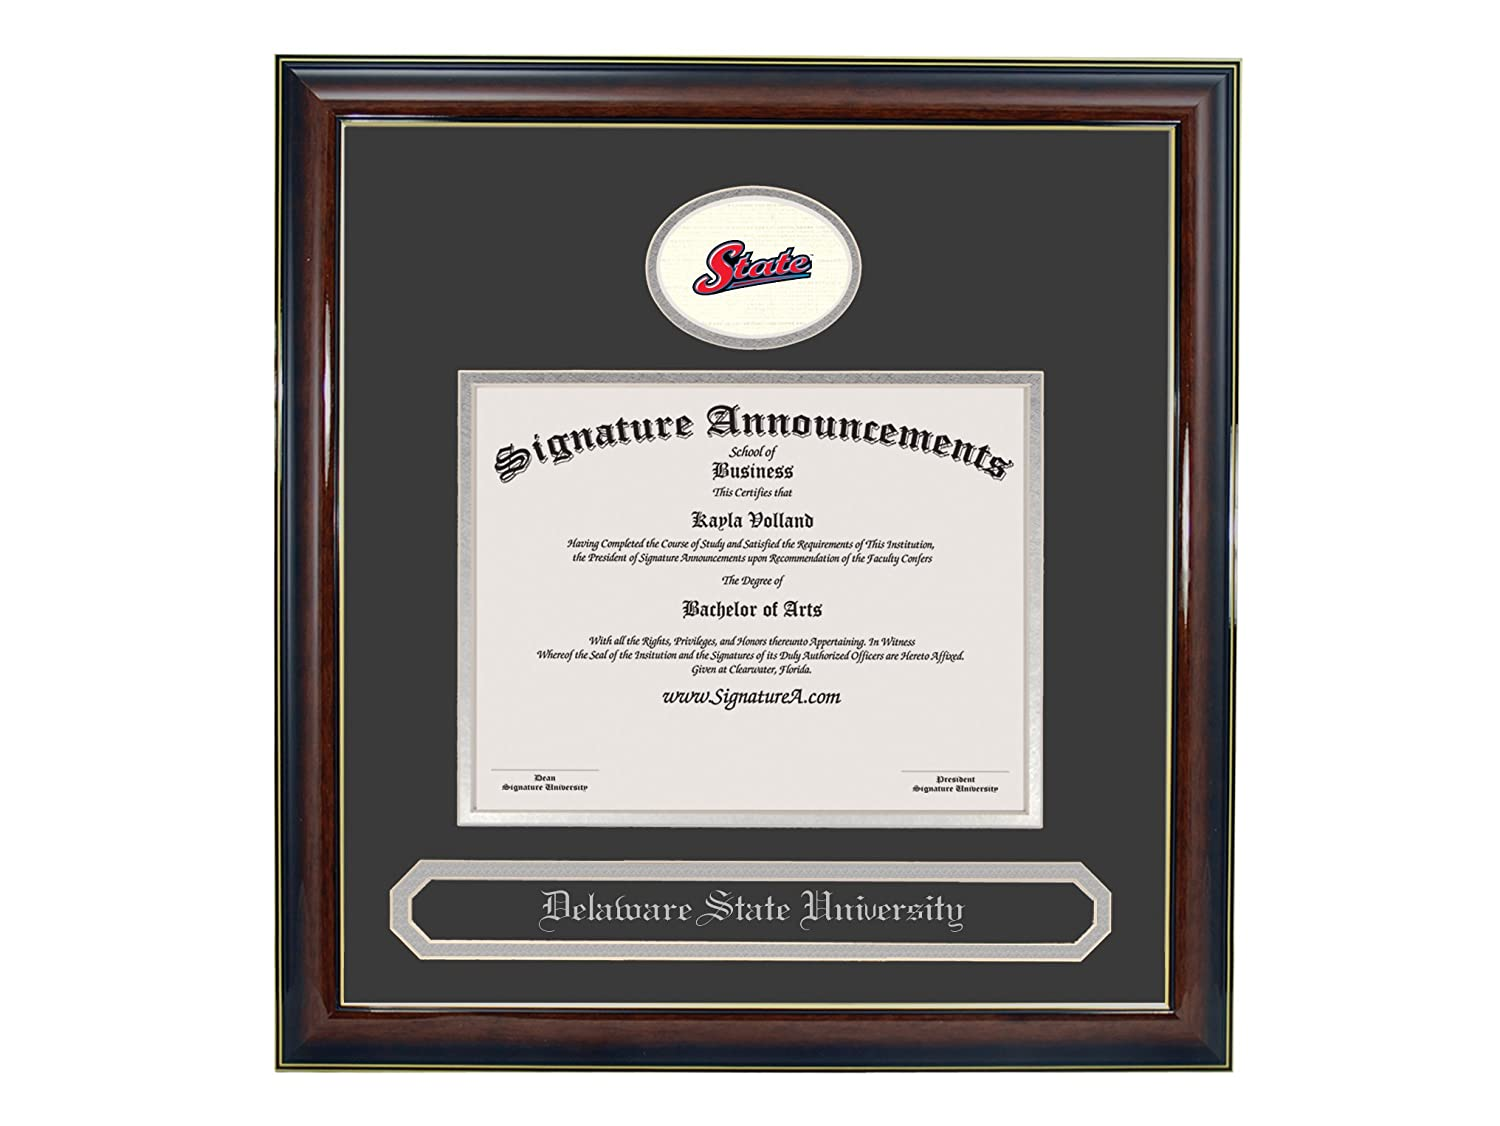 Signature Announcements Delaware State University Undergraduate Sculpted Foil Seal /& Name Graduation Diploma Frame 16 x 16 Gloss Mahogany with Gold Accent